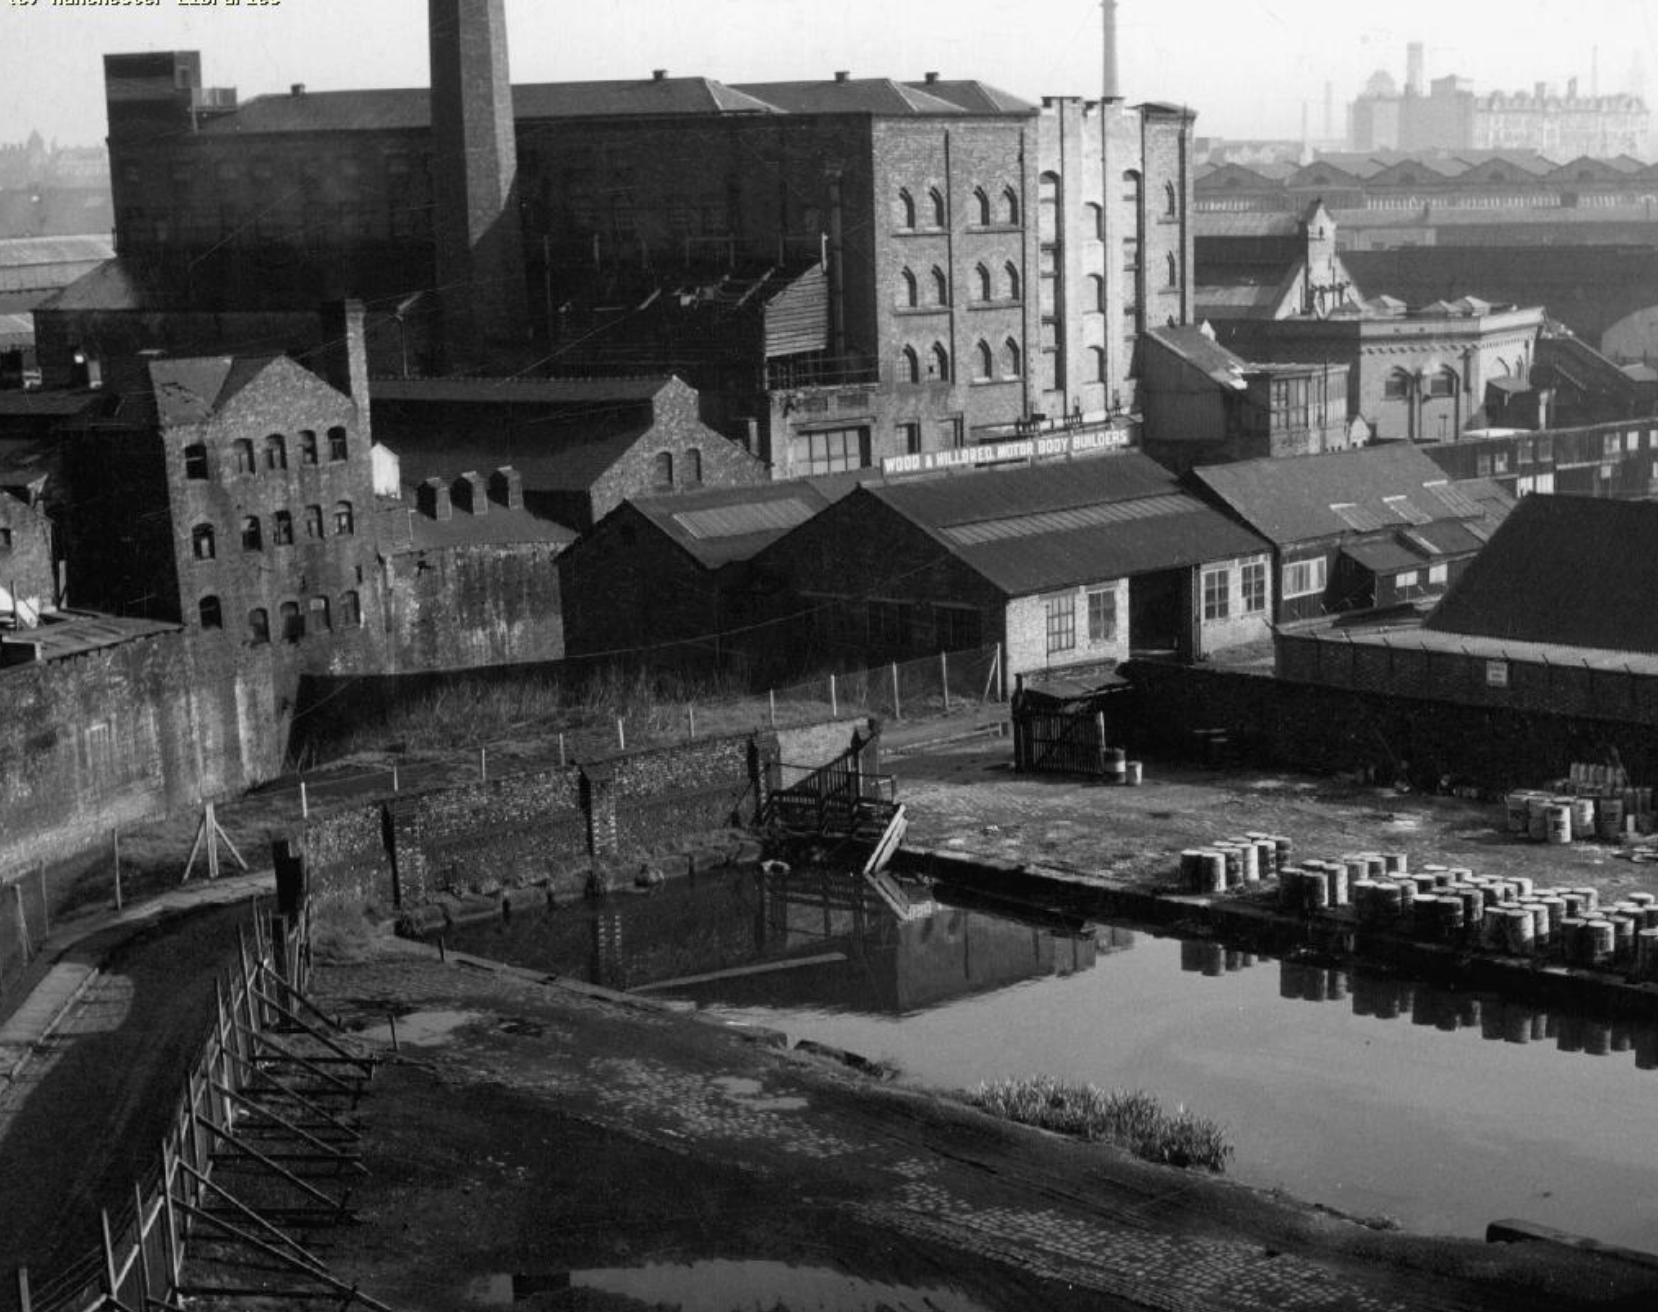 Potato Wharf Castlefield, from the railway viaducts